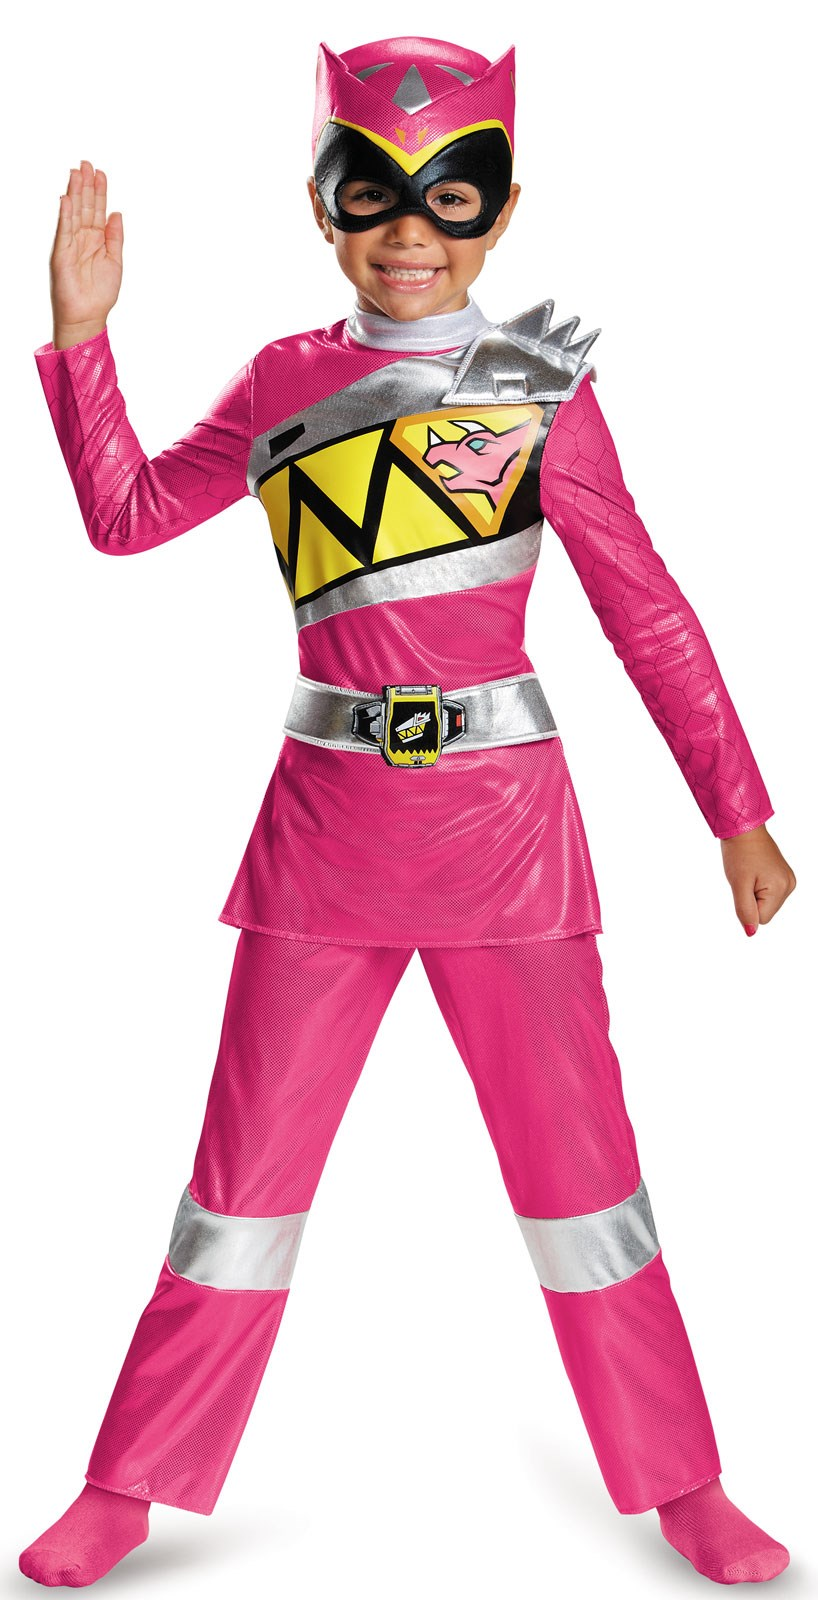 Power Rangers Dino Charge: Deluxe Toddler Pink Ranger Costume